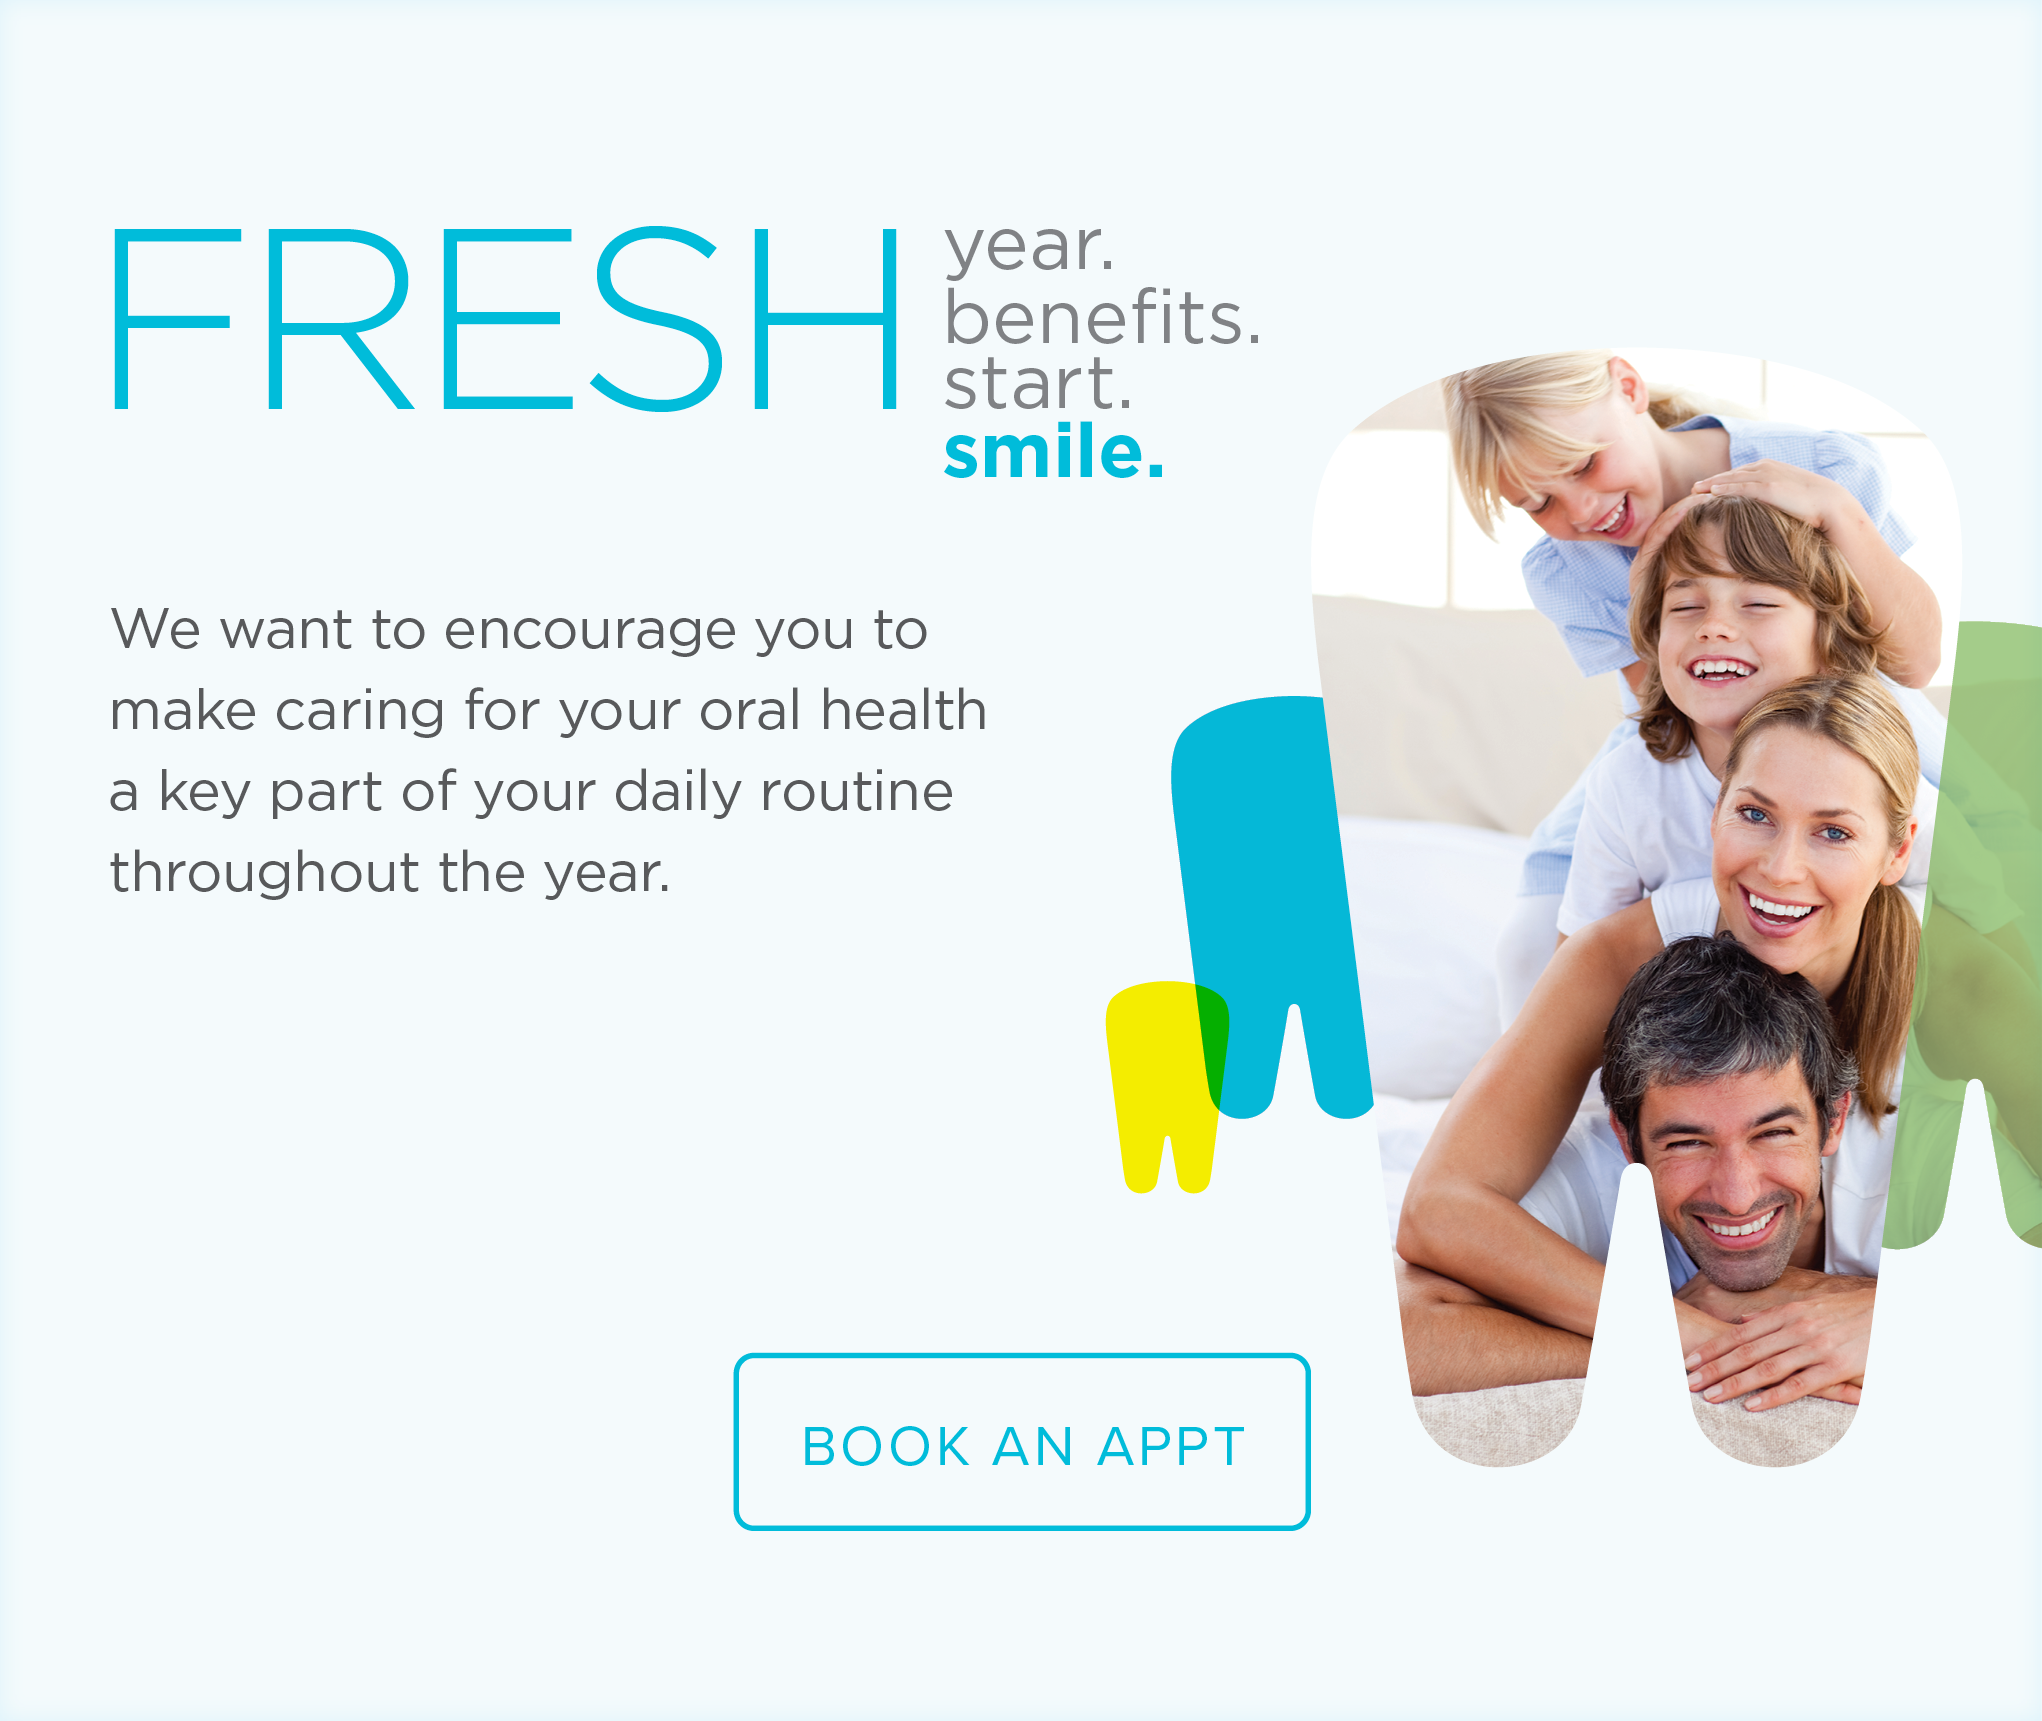 Bakersfield Dental Group and Orthodontics - Make the Most of Your Benefits